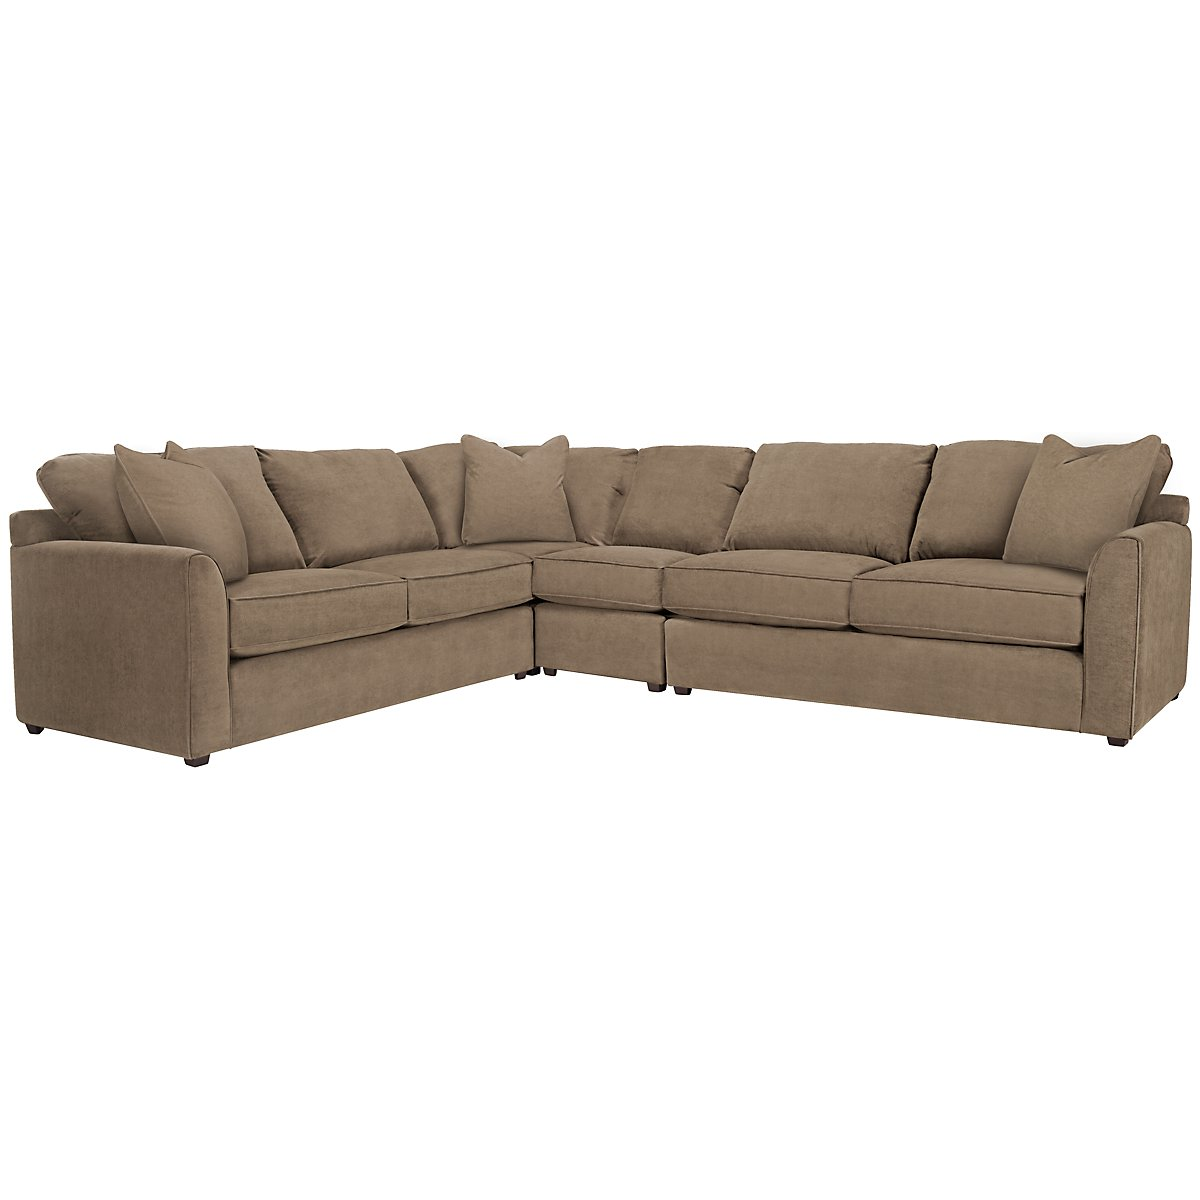 Express3 Lt Brown Microfiber Large Two-Arm Sectional